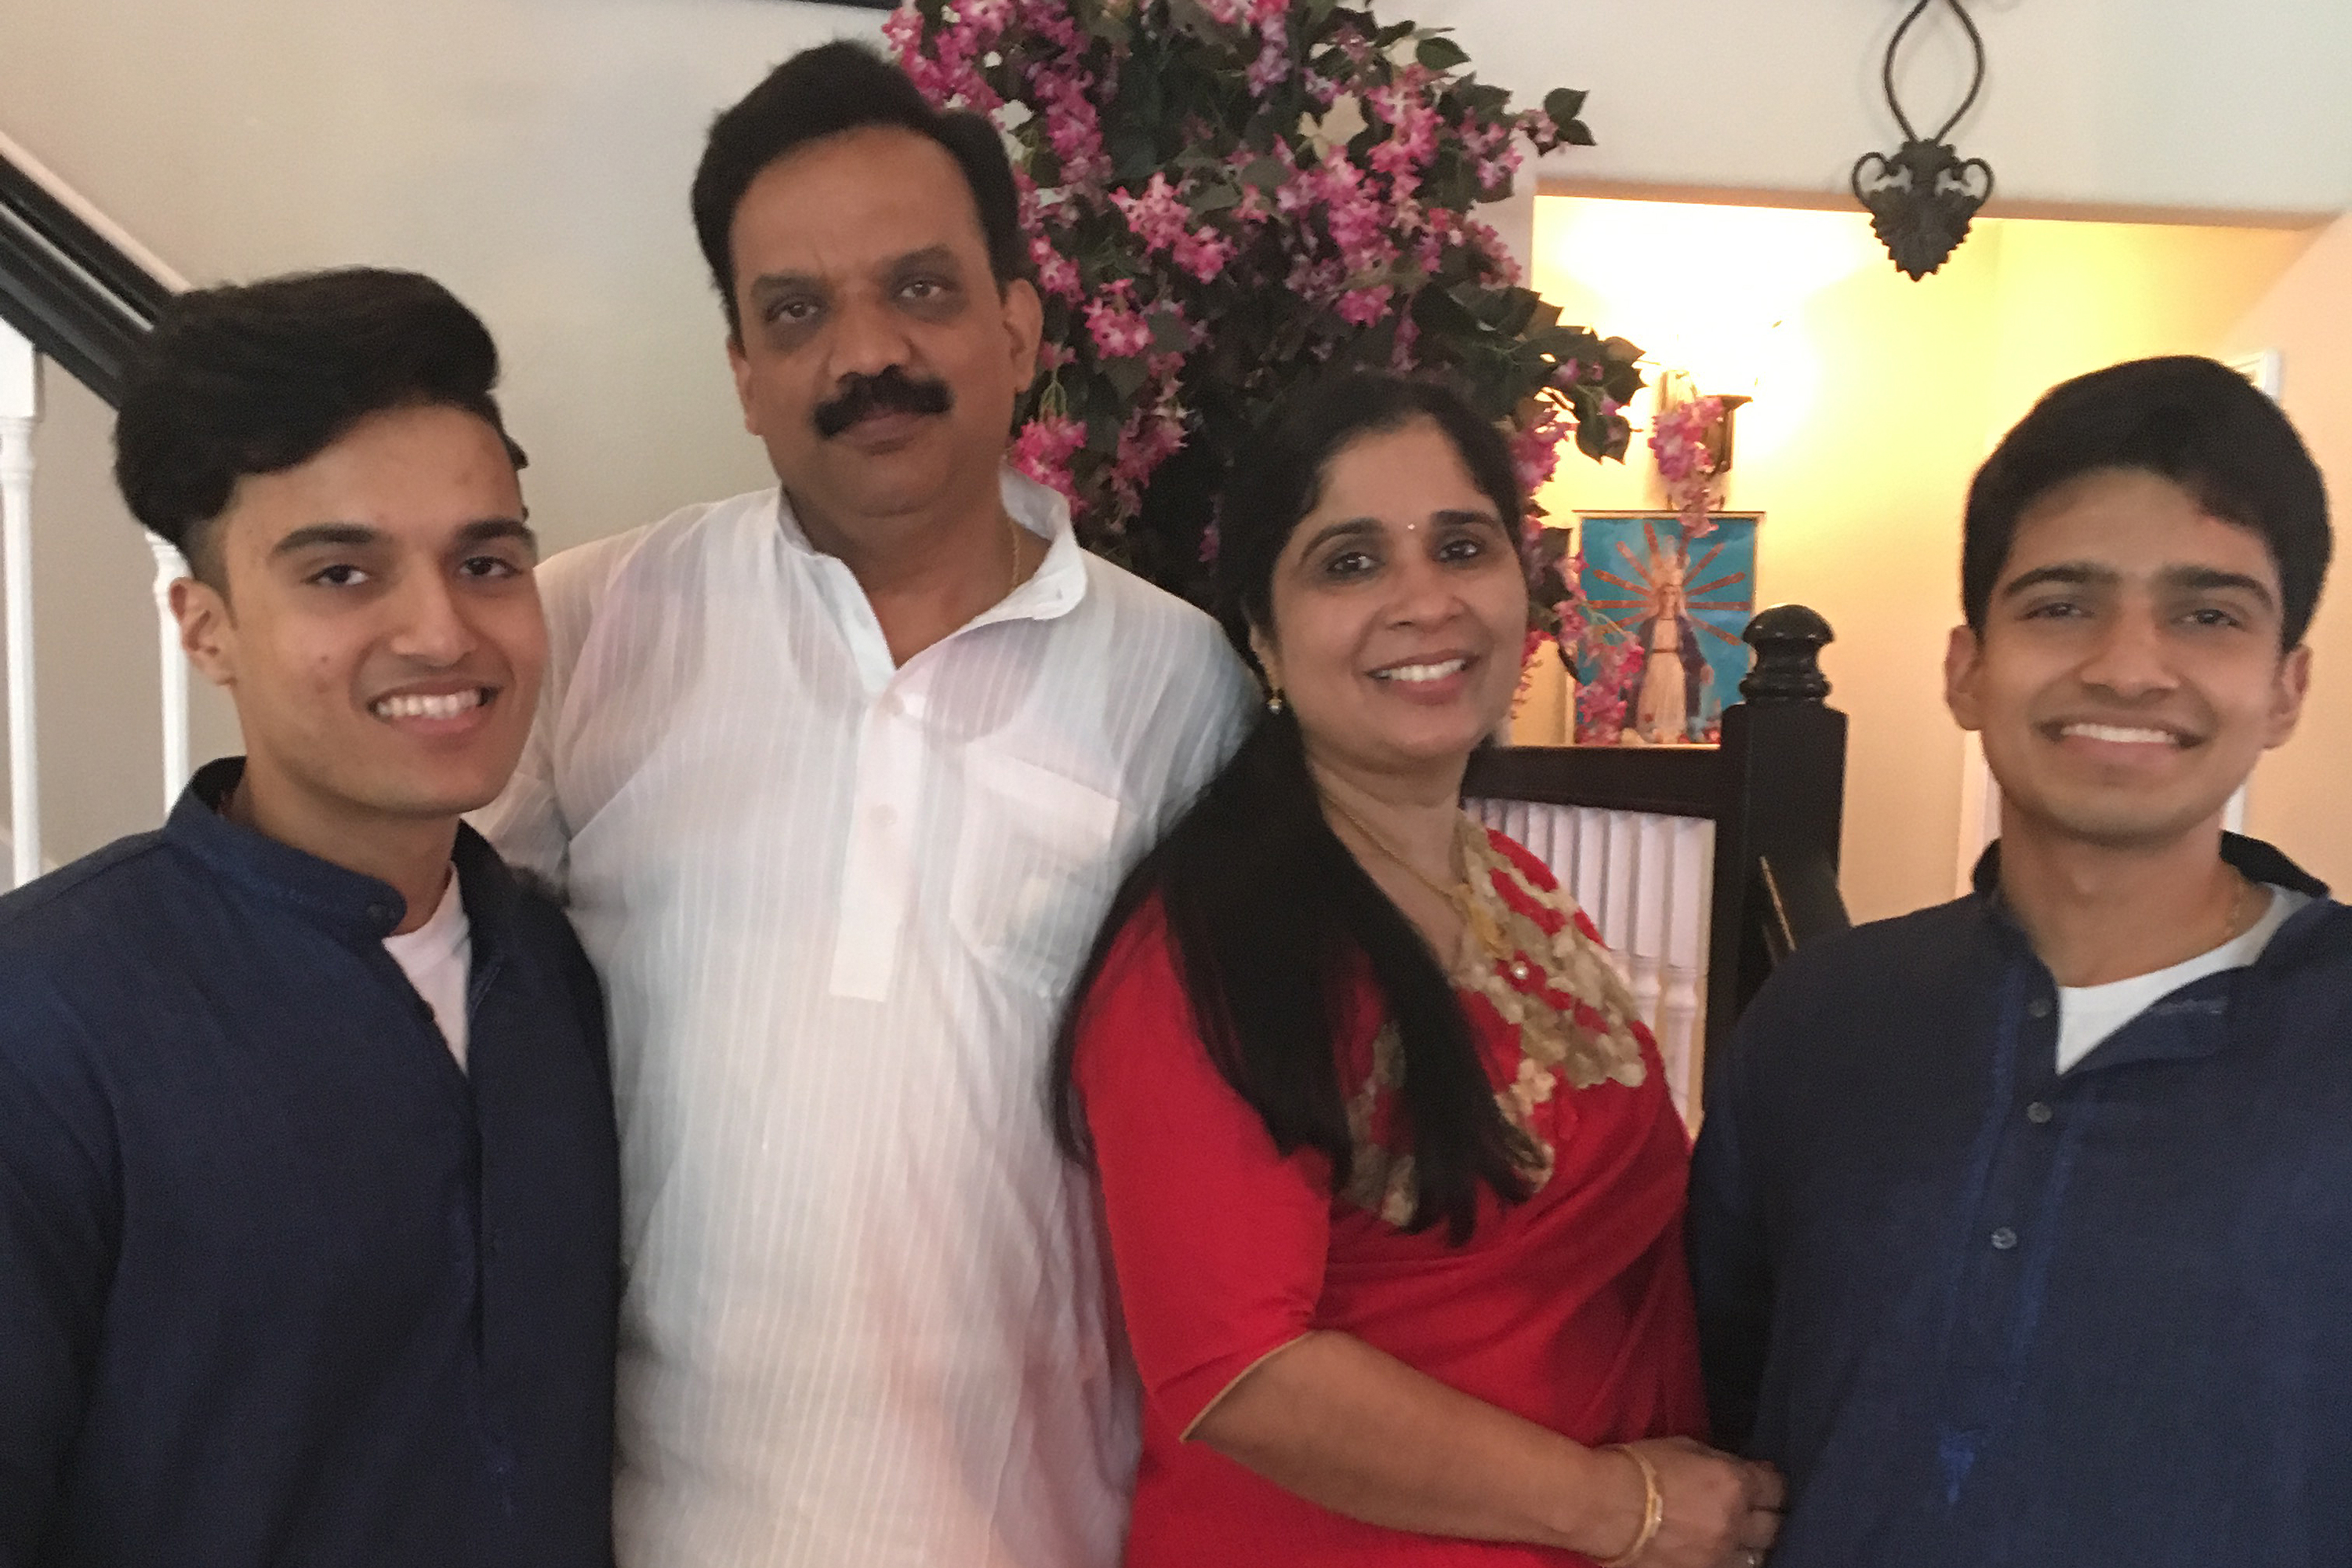 MTA worker Thankachan Mathai, pictured with his sons Cyril, left, and Mathews, and wife Sheeba. Thankachan died in April after contracting the coronavirus.